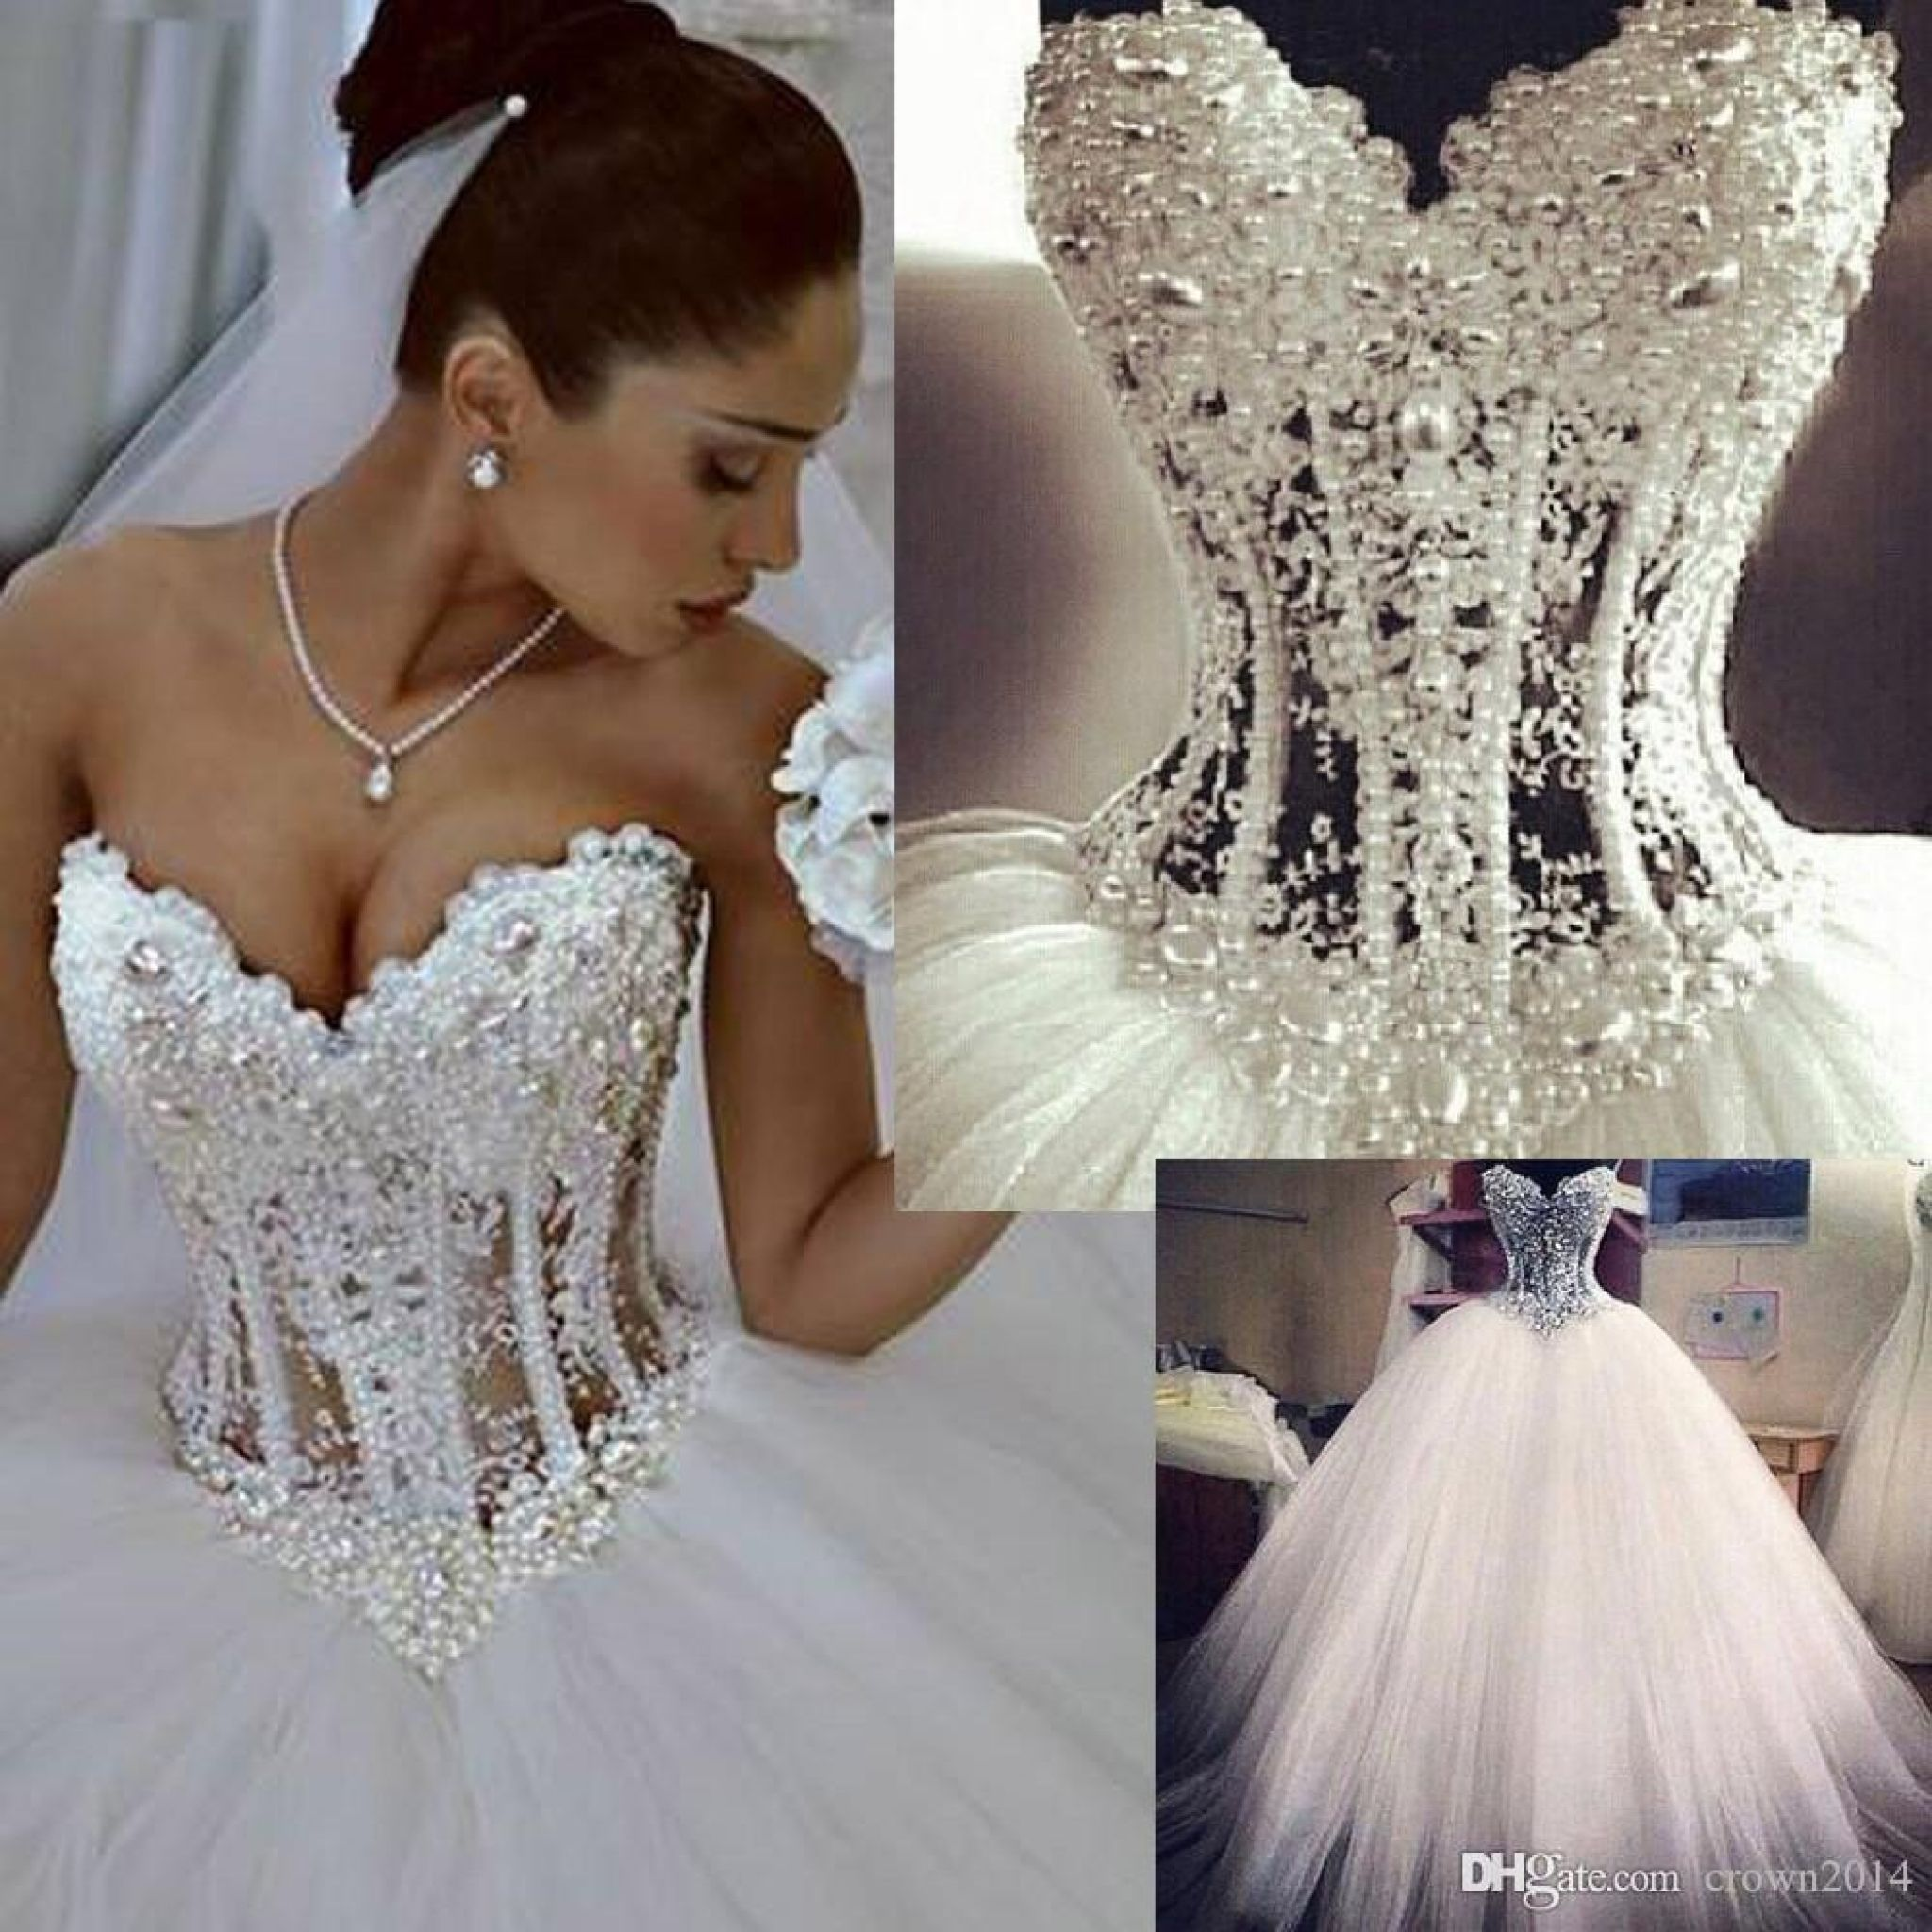 Wedding dresses with lace up back country dresses for weddings